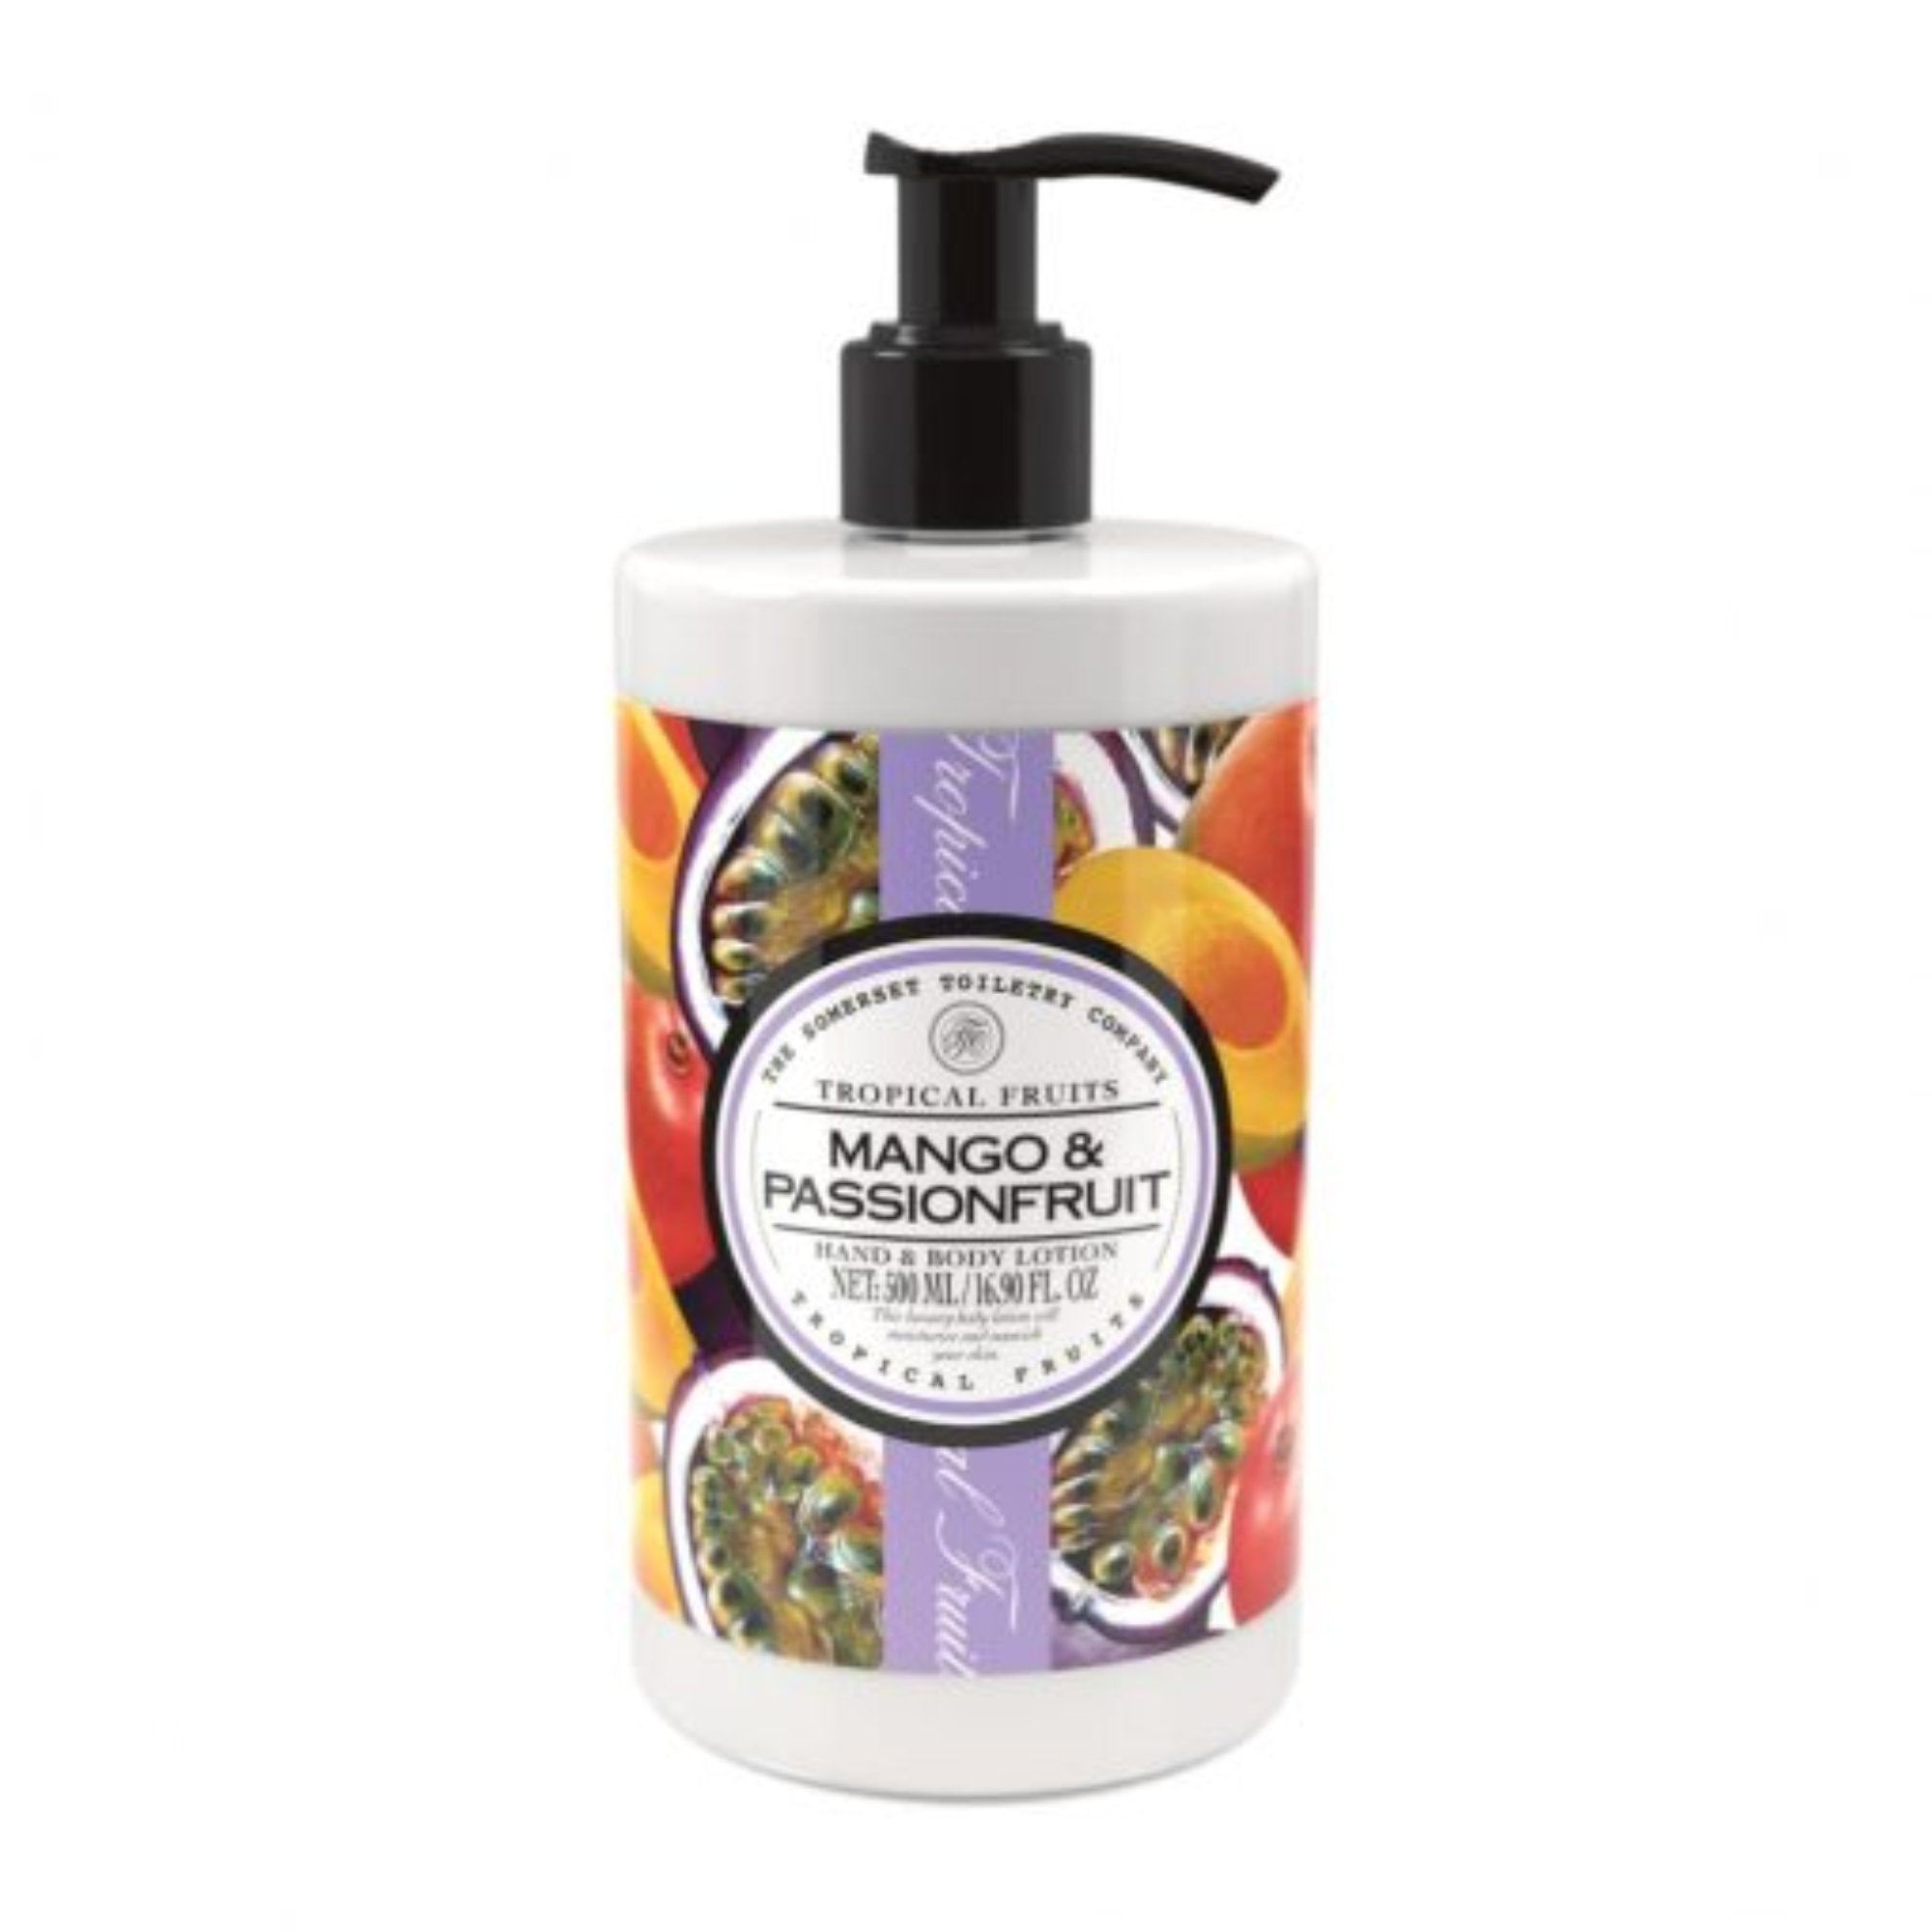 Tropical Fruits Body Lotion